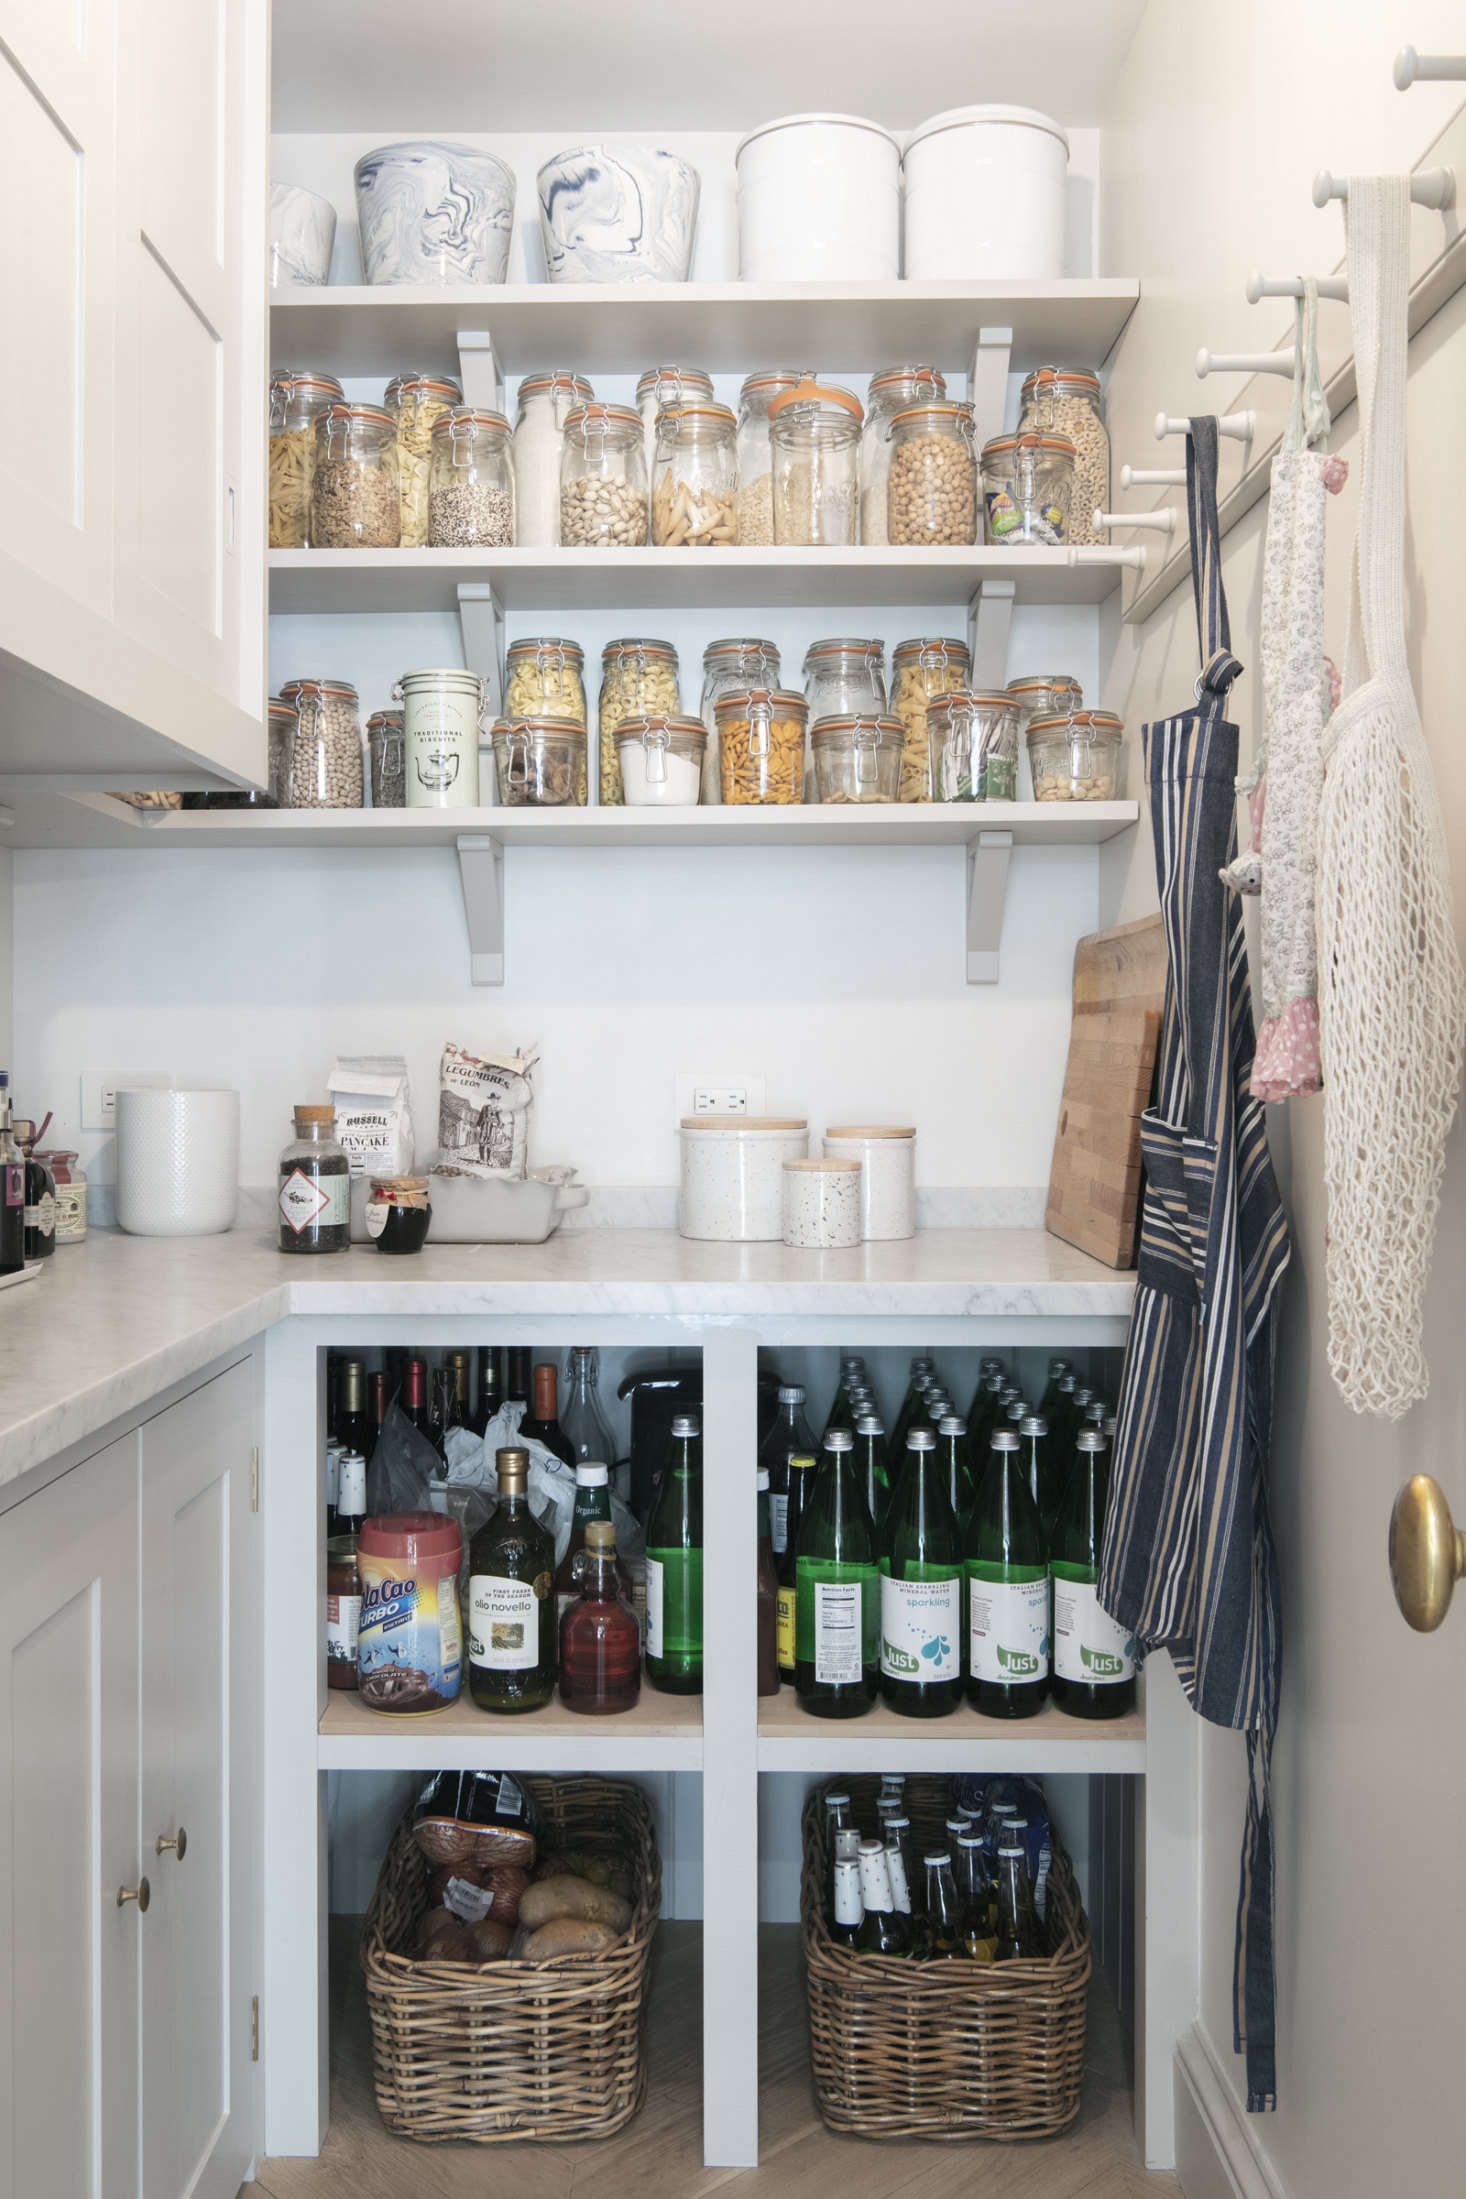 And, before you start decanting your grains and labeling your baskets, check out 10 Things Nobody Tells You About Organizing Your Pantry for some insider tips you might not have thought about. Photograph by Dustin Aksland.